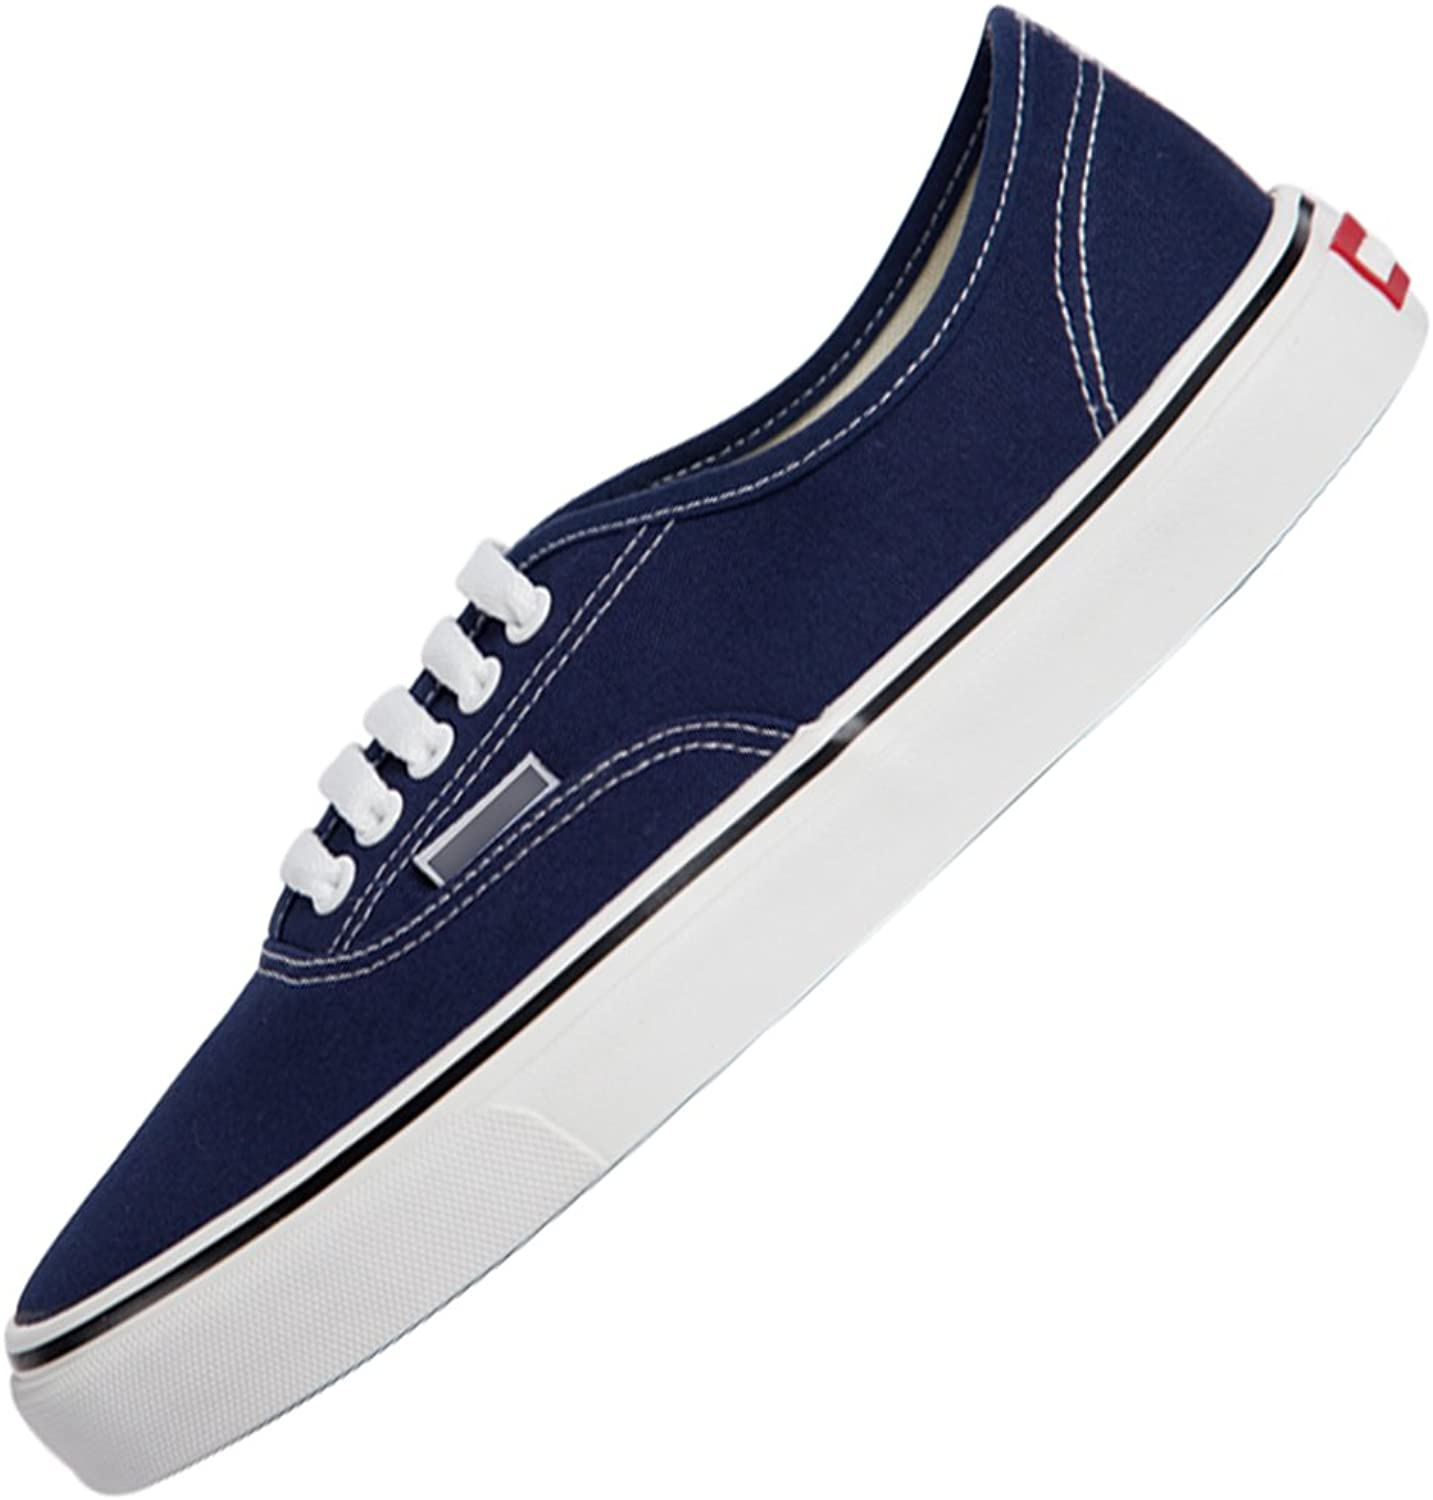 YaNanHome Canvas shoe Boat shoes Canvas shoes men's shoes spring low to help Korean style casual shoes flat floor board shoes (color   bluee, Size   41)